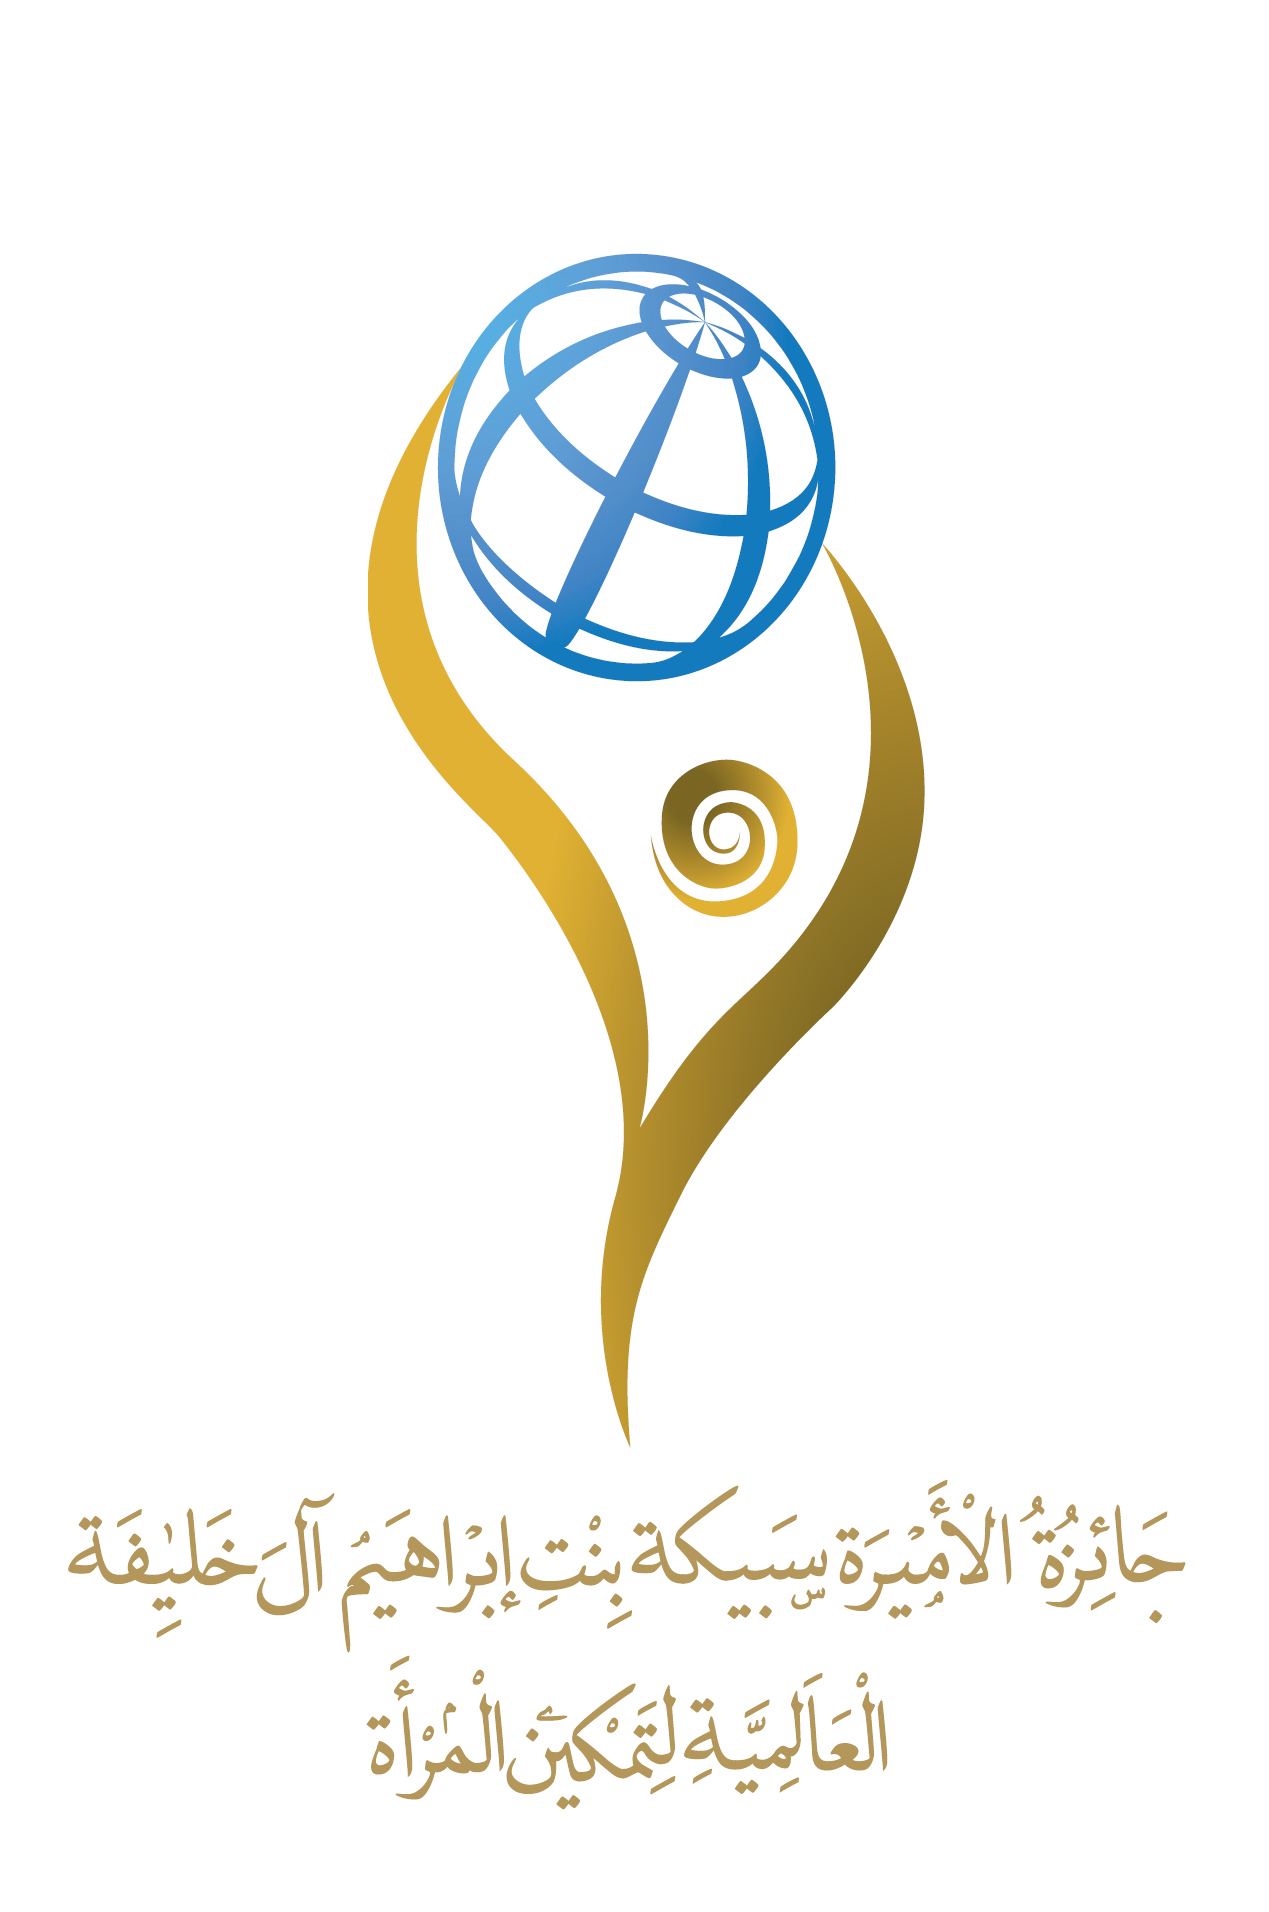 HRH Princess Sabeeka award jury includes UN, legal, diplomatic figures